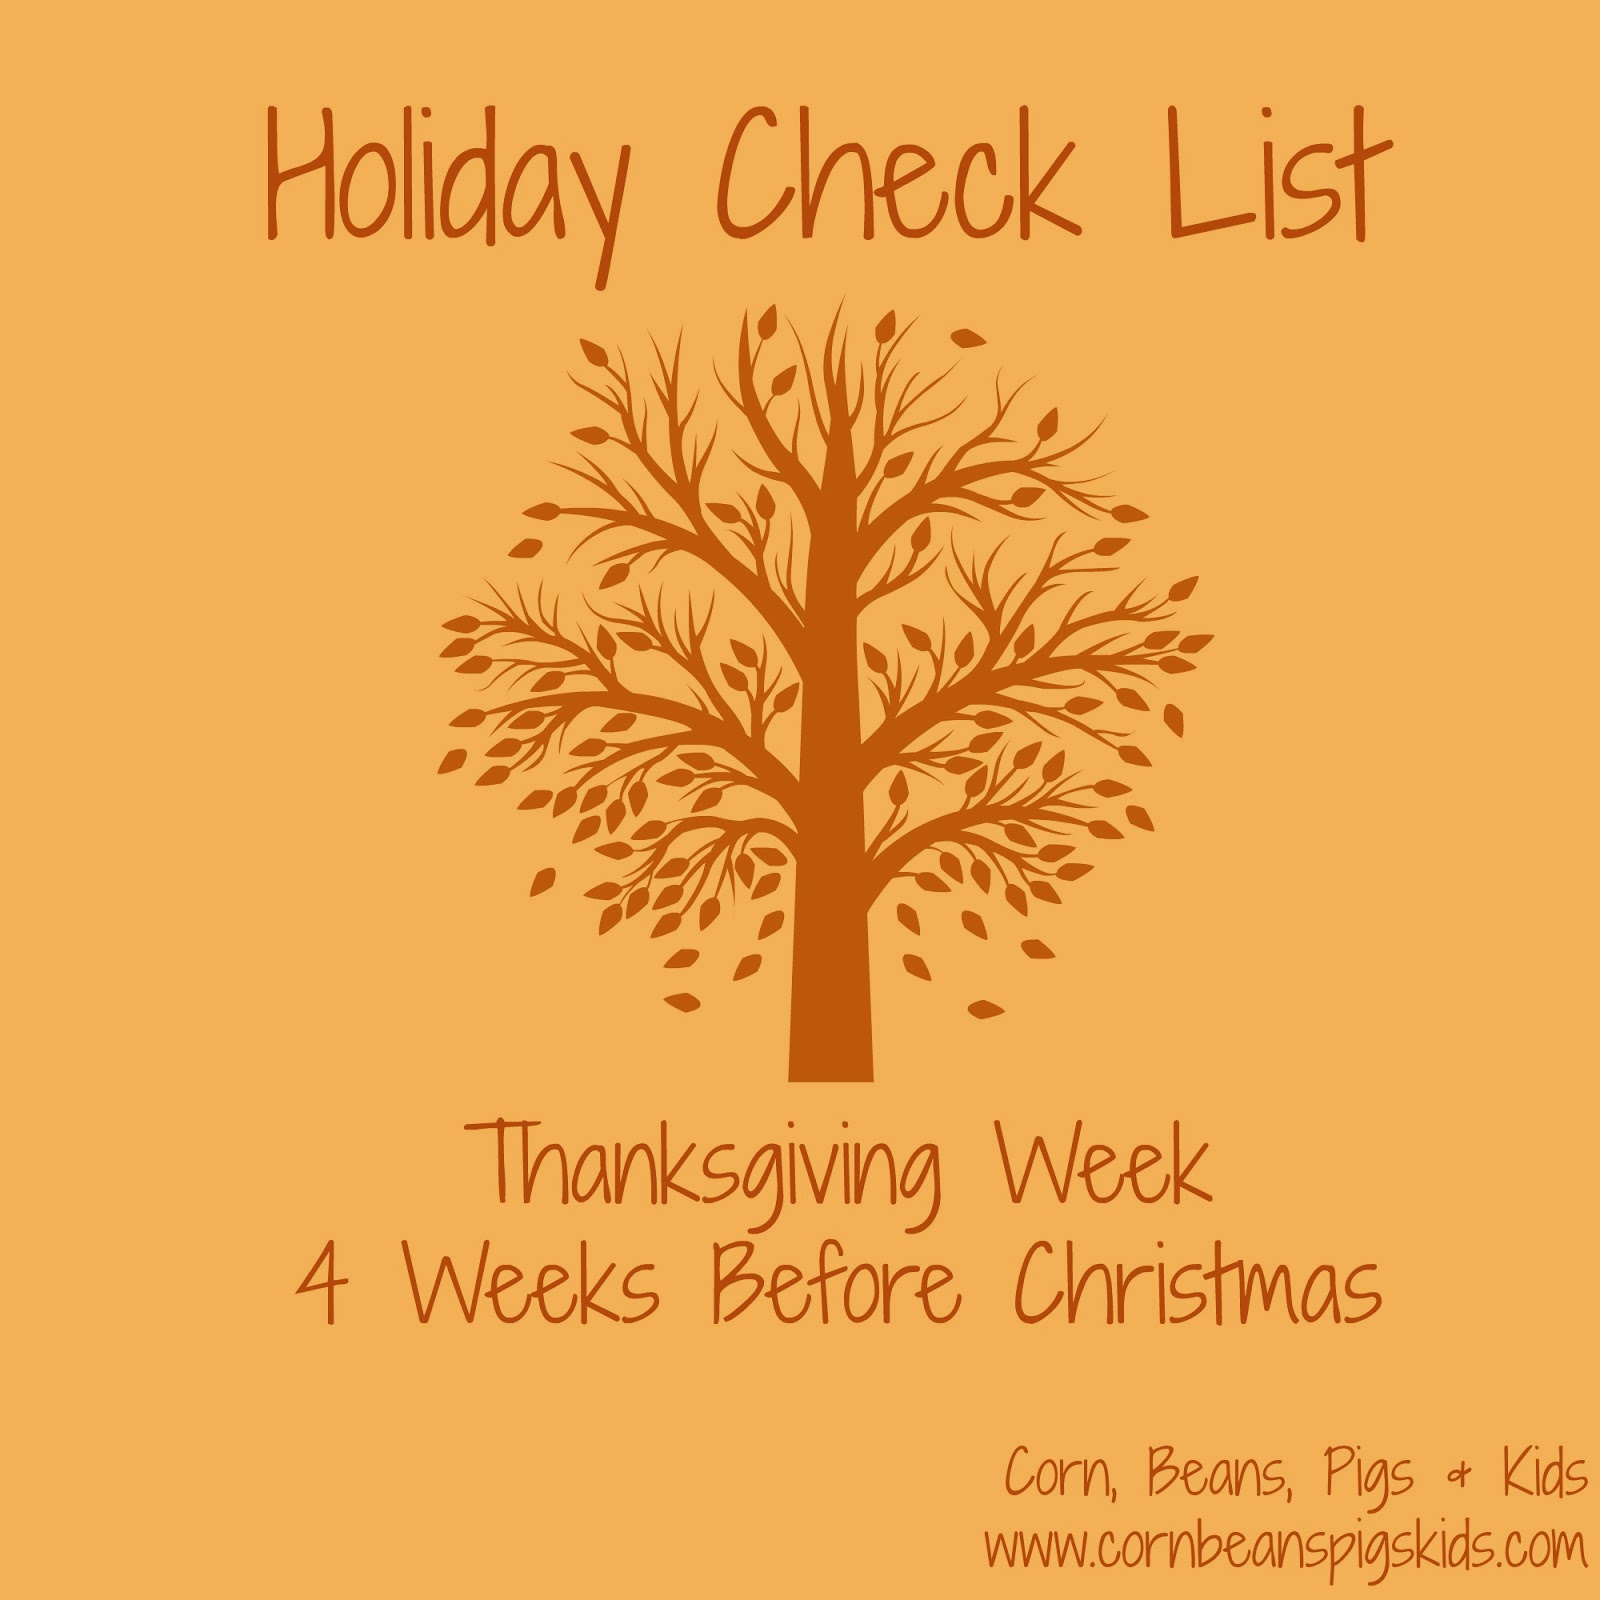 Holiday Check List - Thanksgiving Week